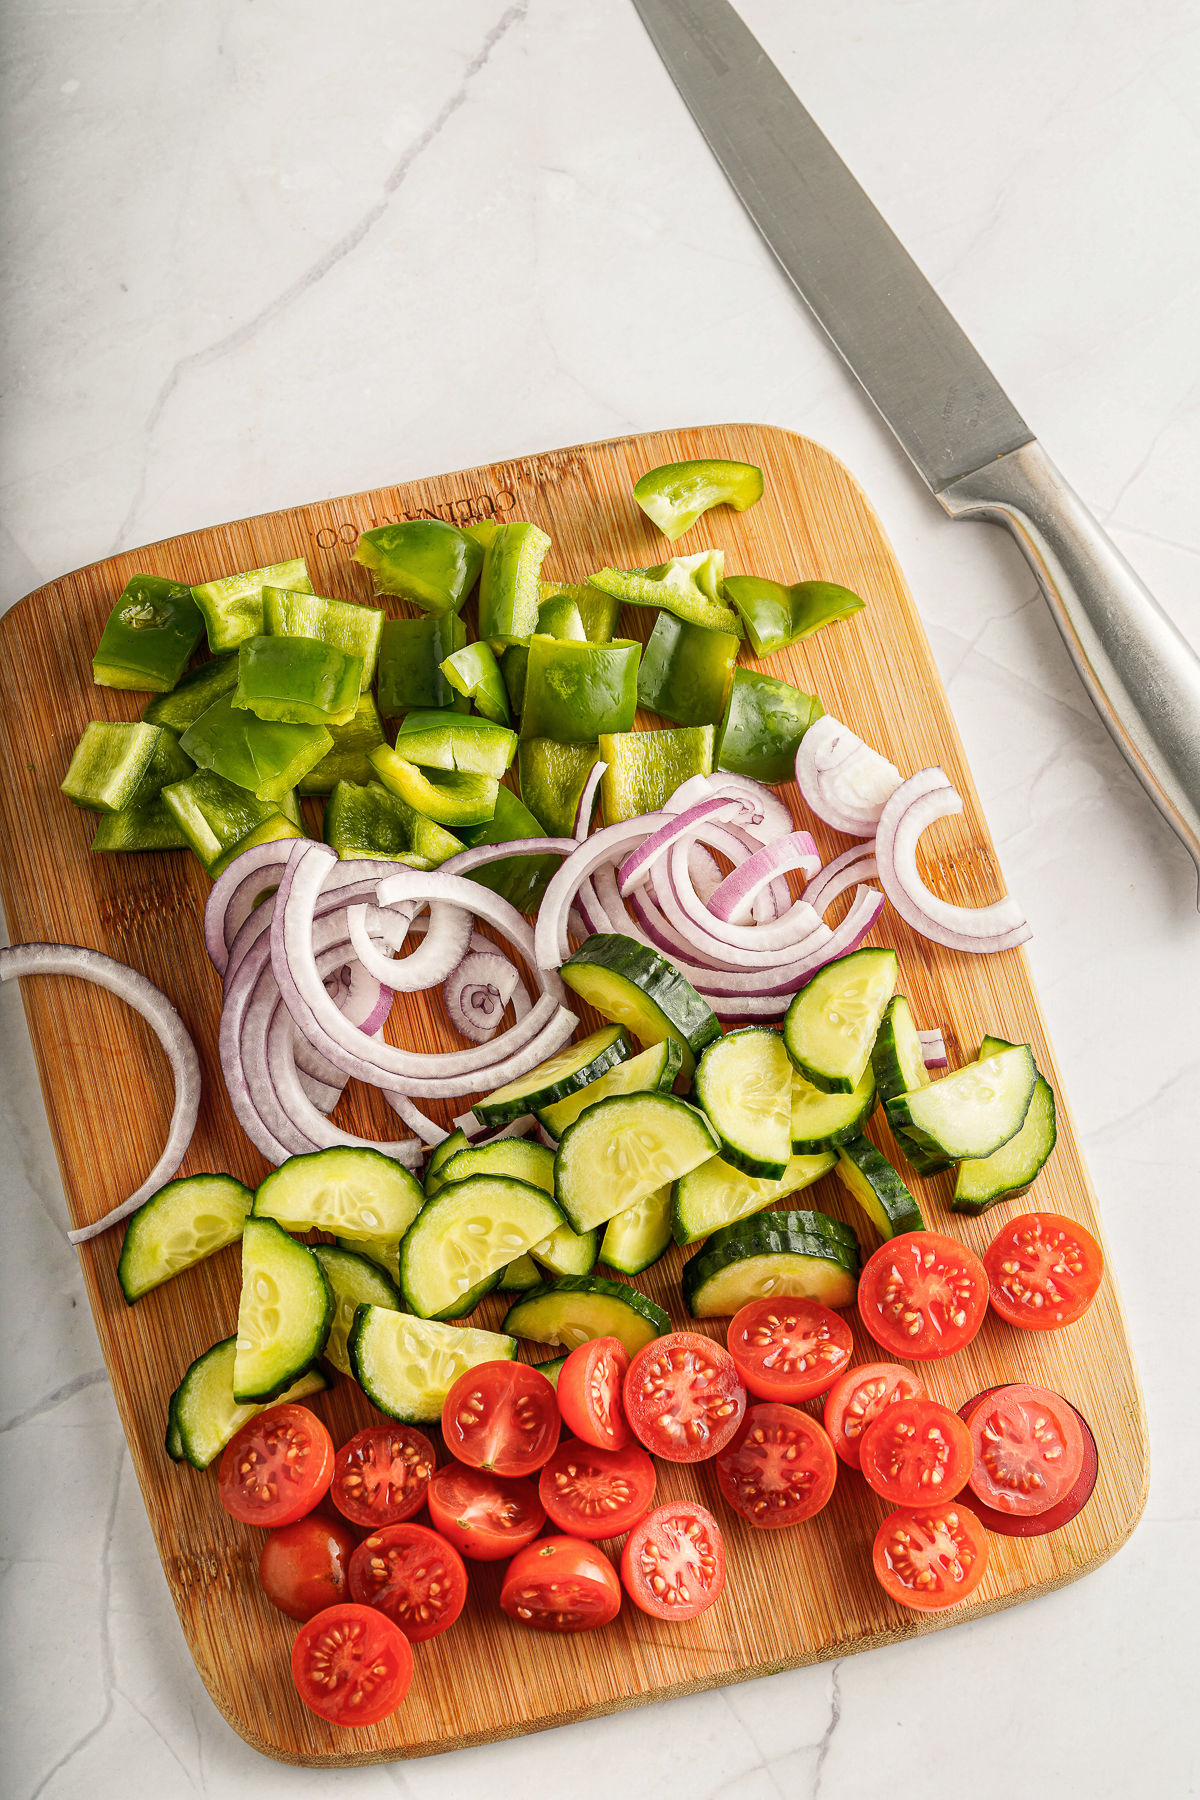 Chopped vegetables on a wooden cutting board for greek salad.